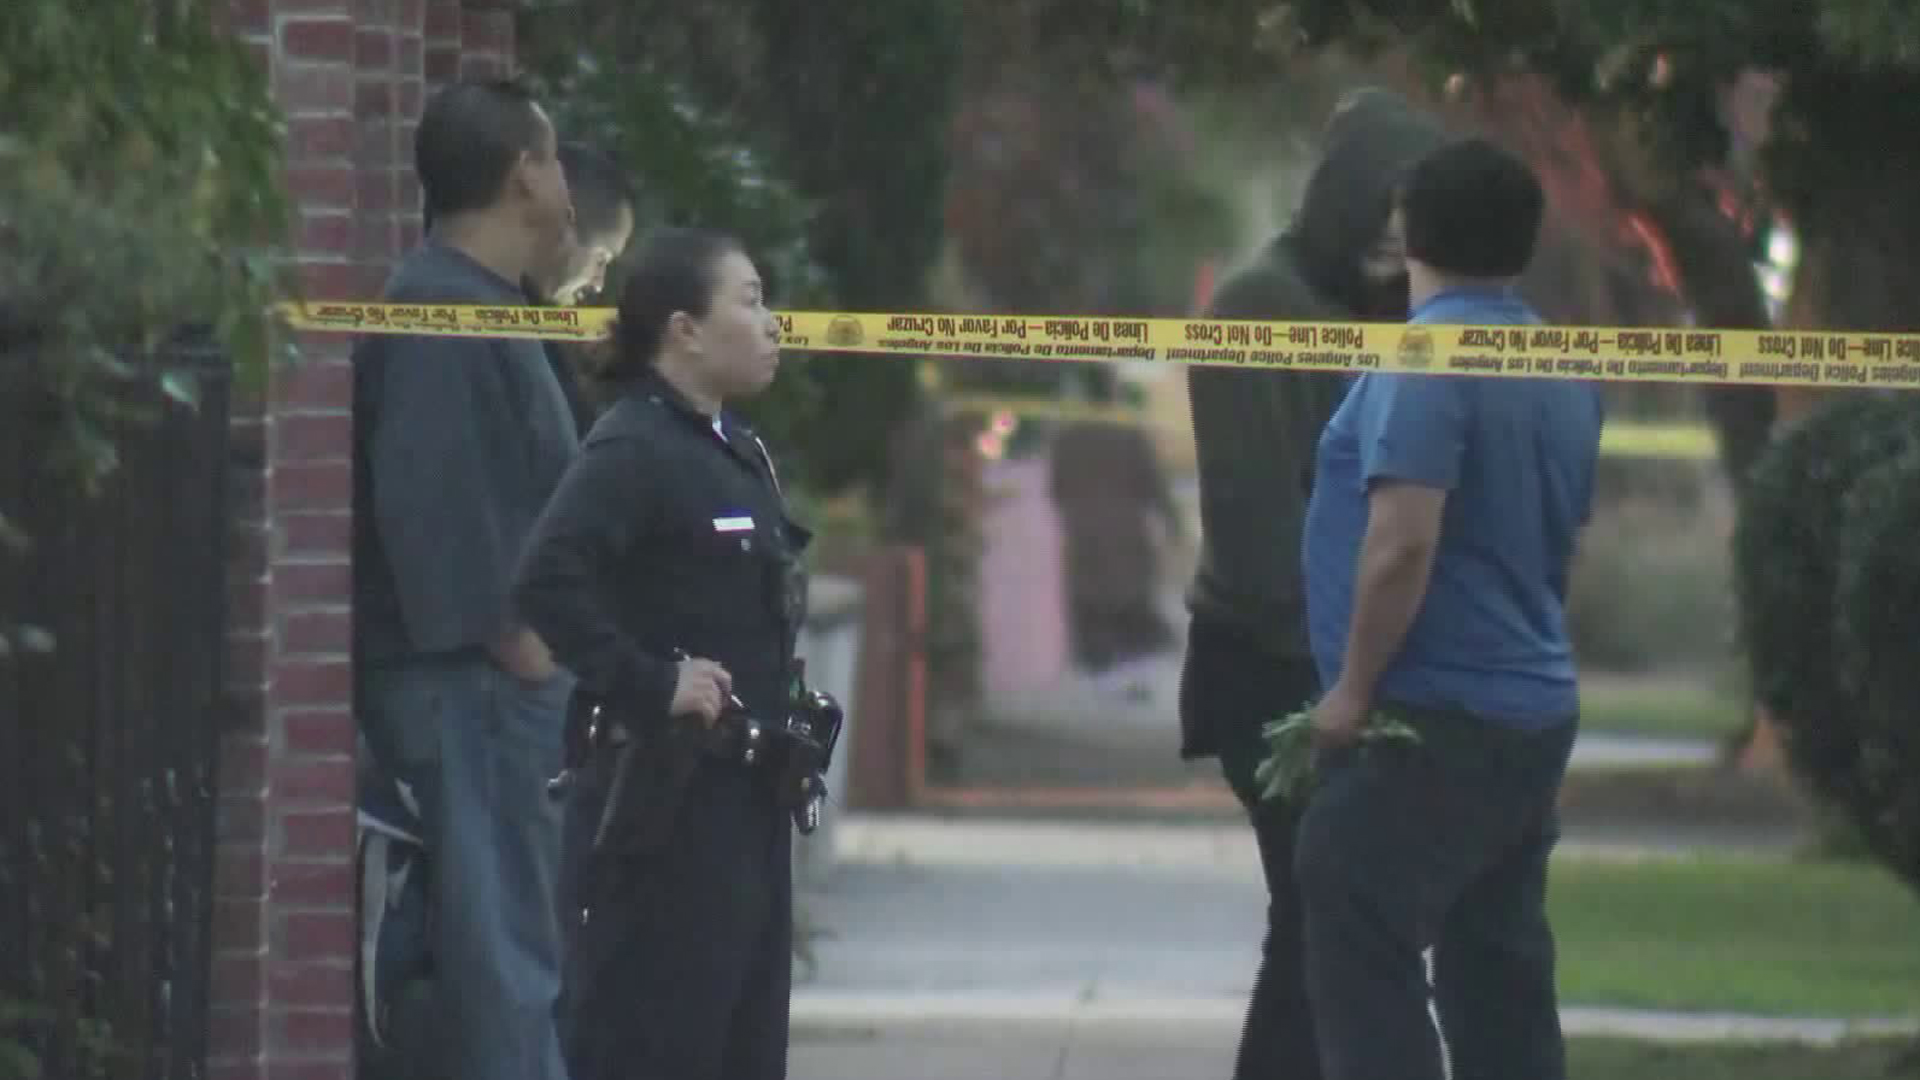 Investigators seen at the scene of a stabbing in Hollywood on Jan. 30, 2019. (Credit: KTLA)